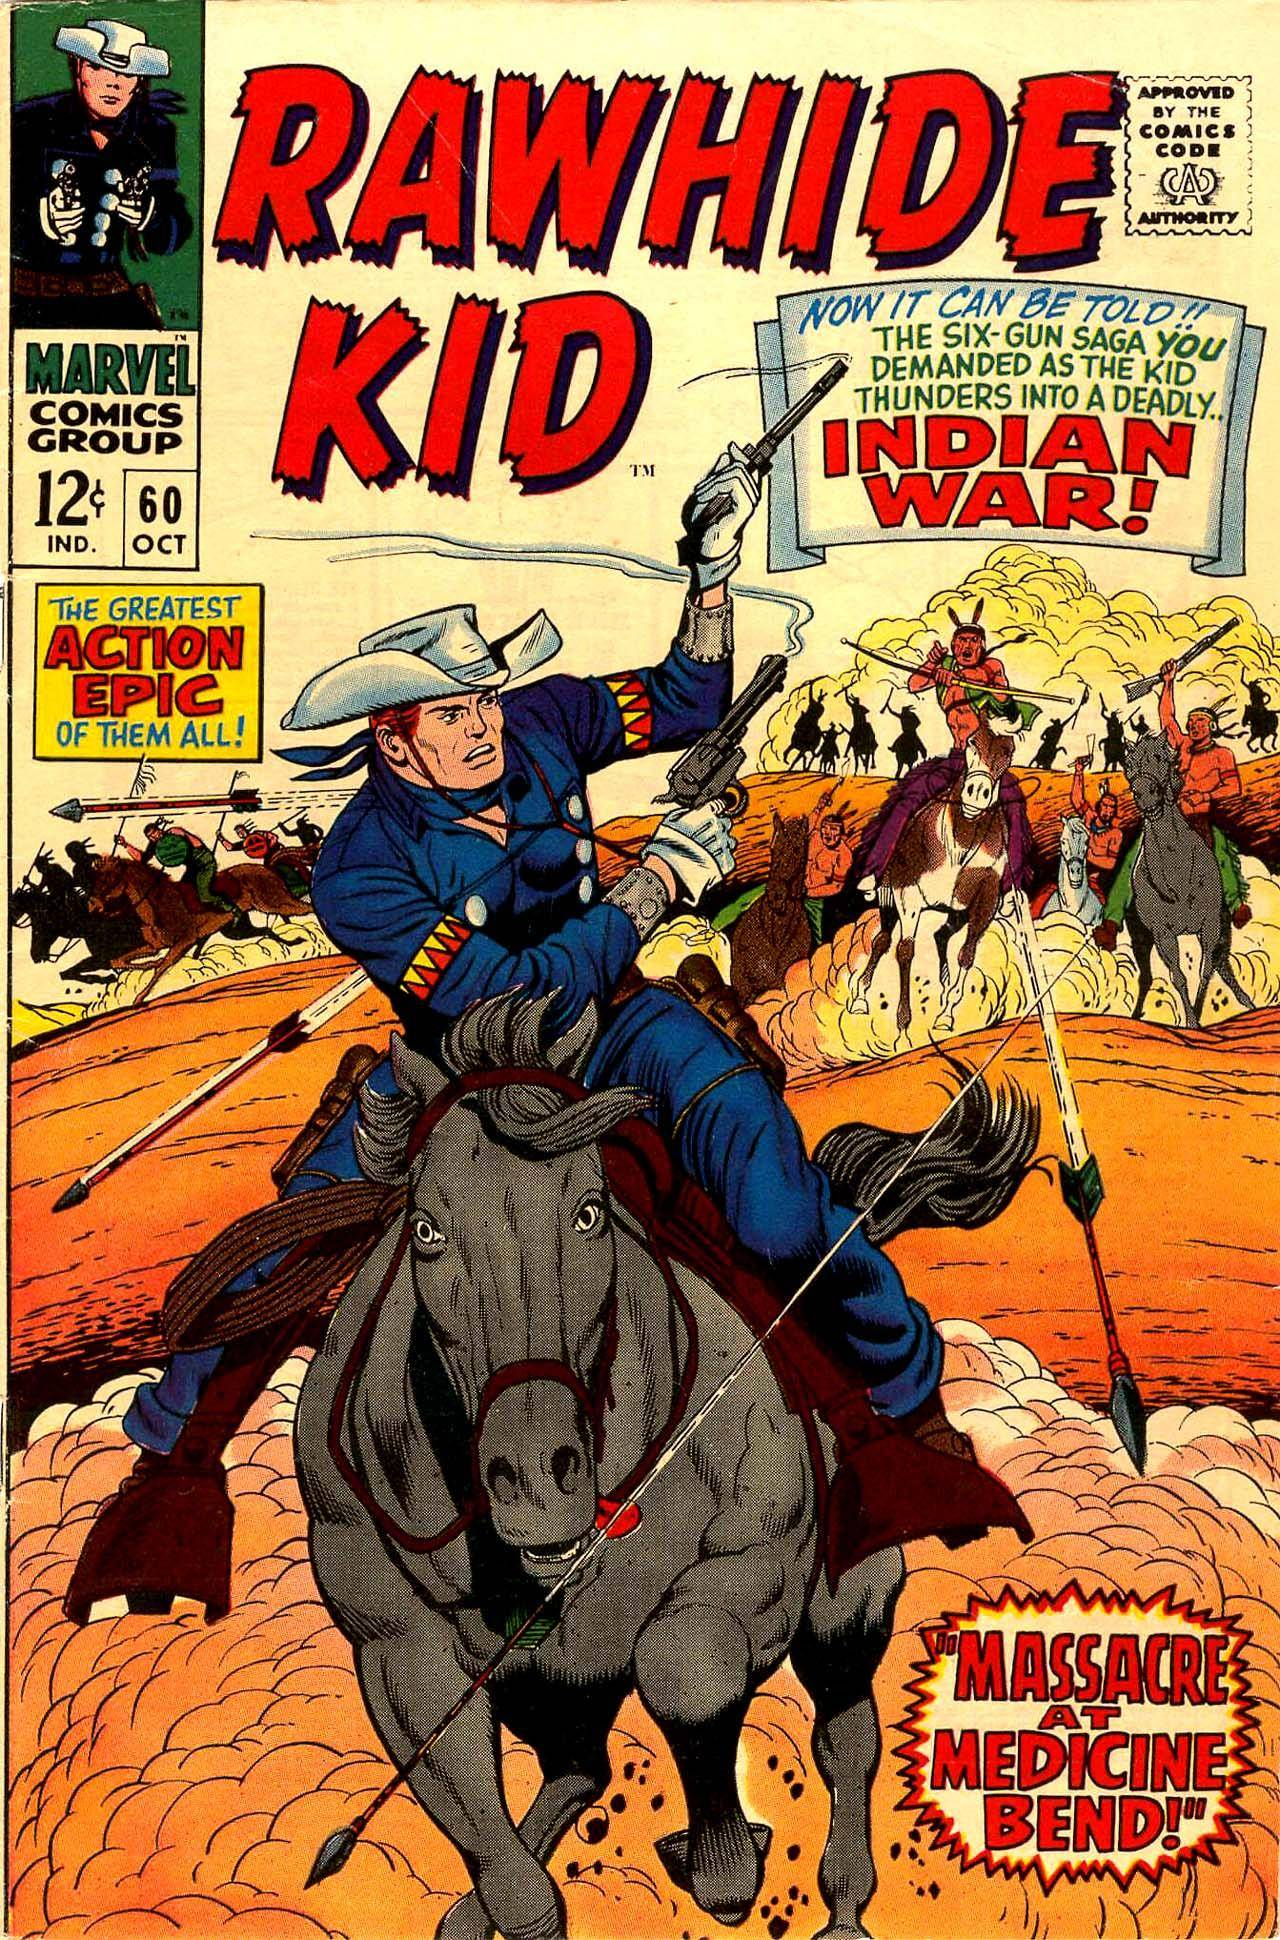 Rawhide Kid v1 060 1967 RE-EDIT